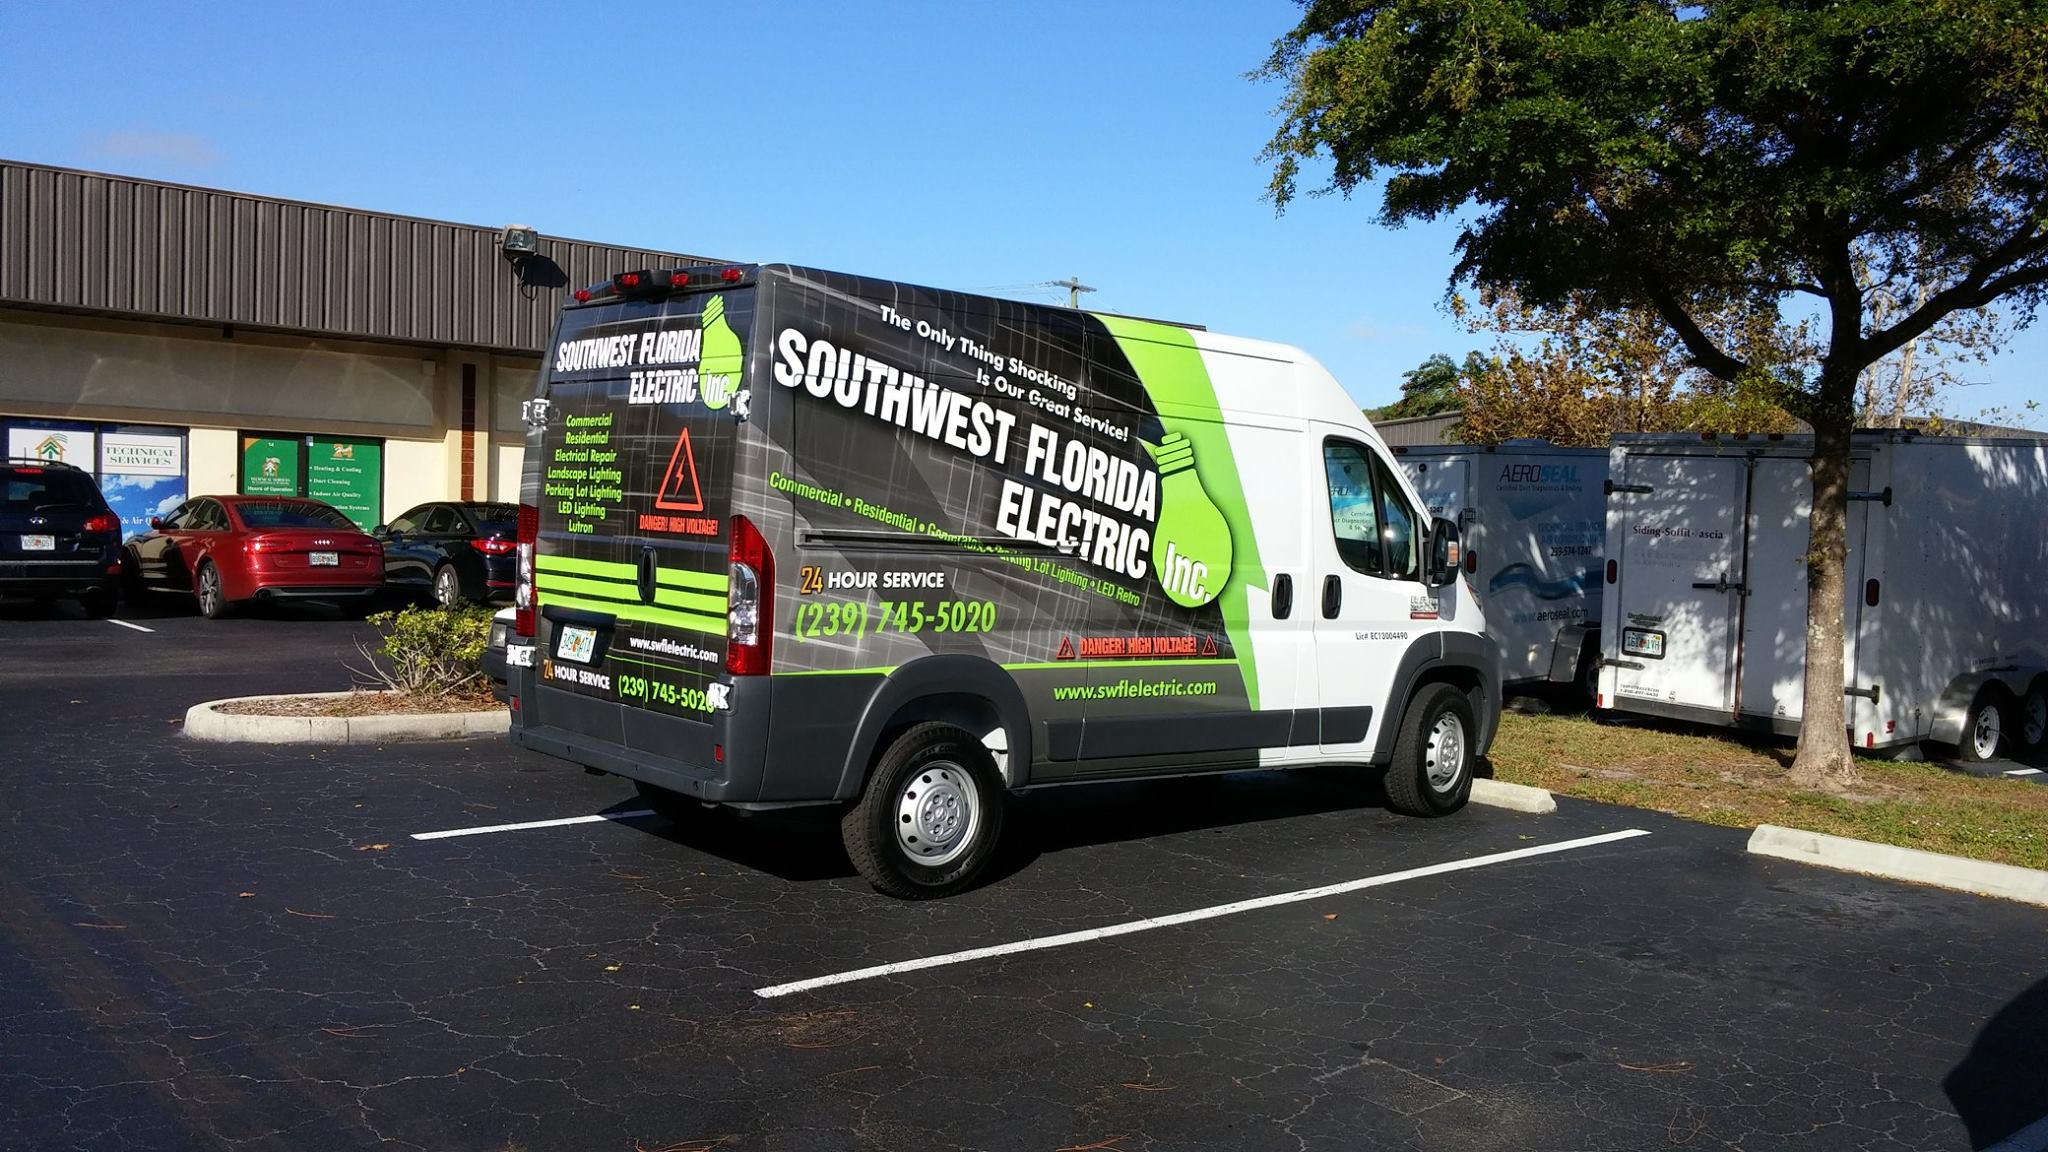 Southwest Florida Electric – Vehicle Wrap